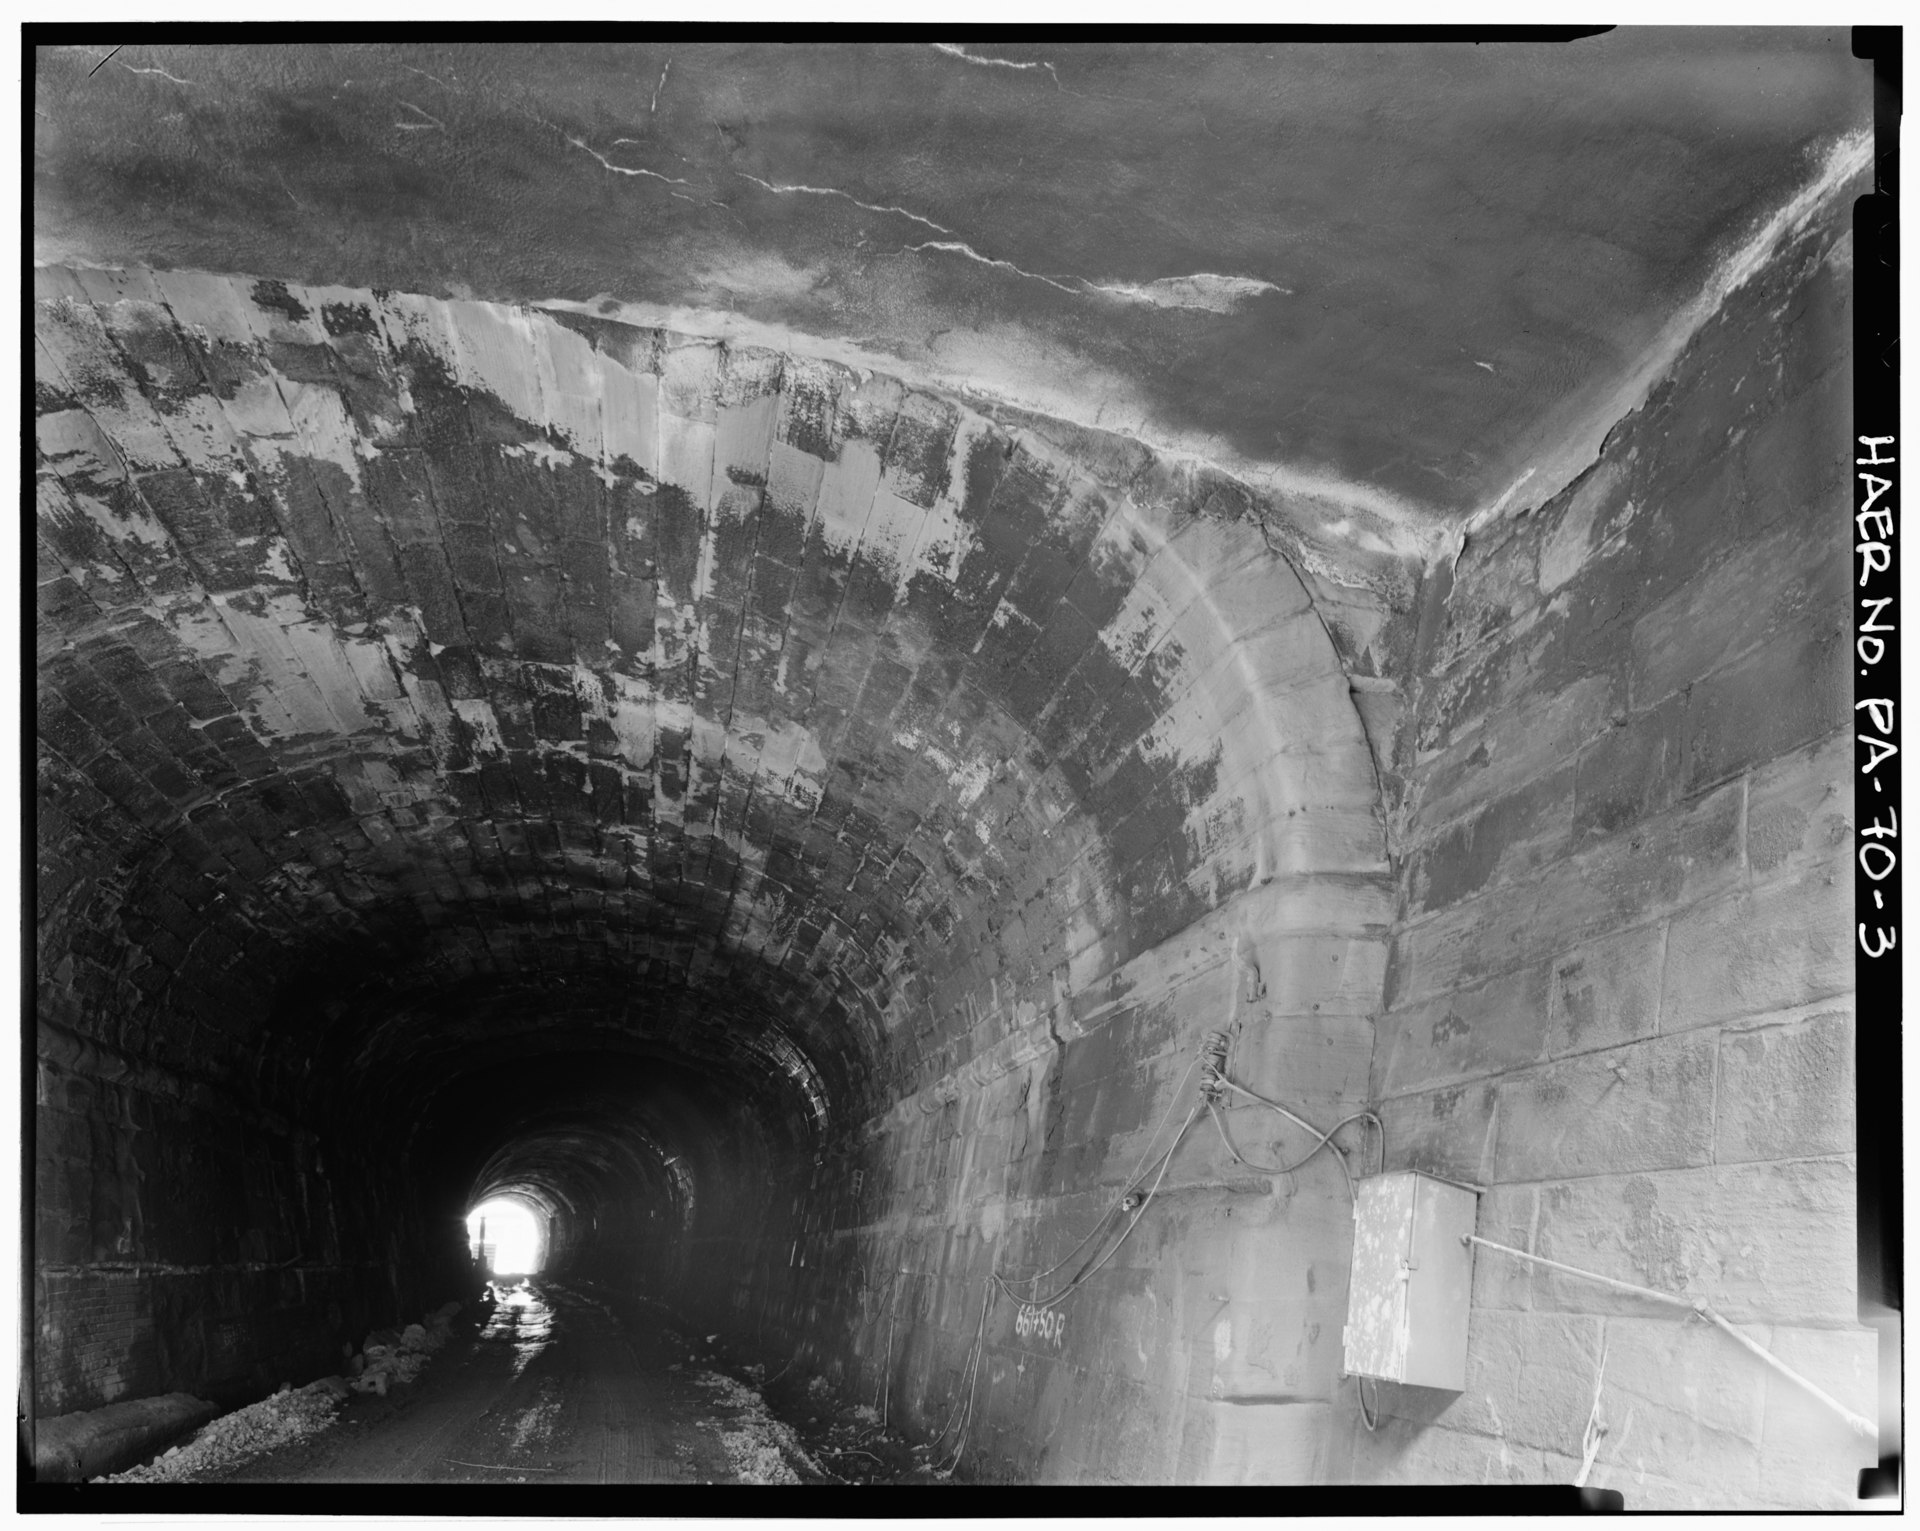 Pittsburgh Amp Steubenville Extension Railroad Tunnel